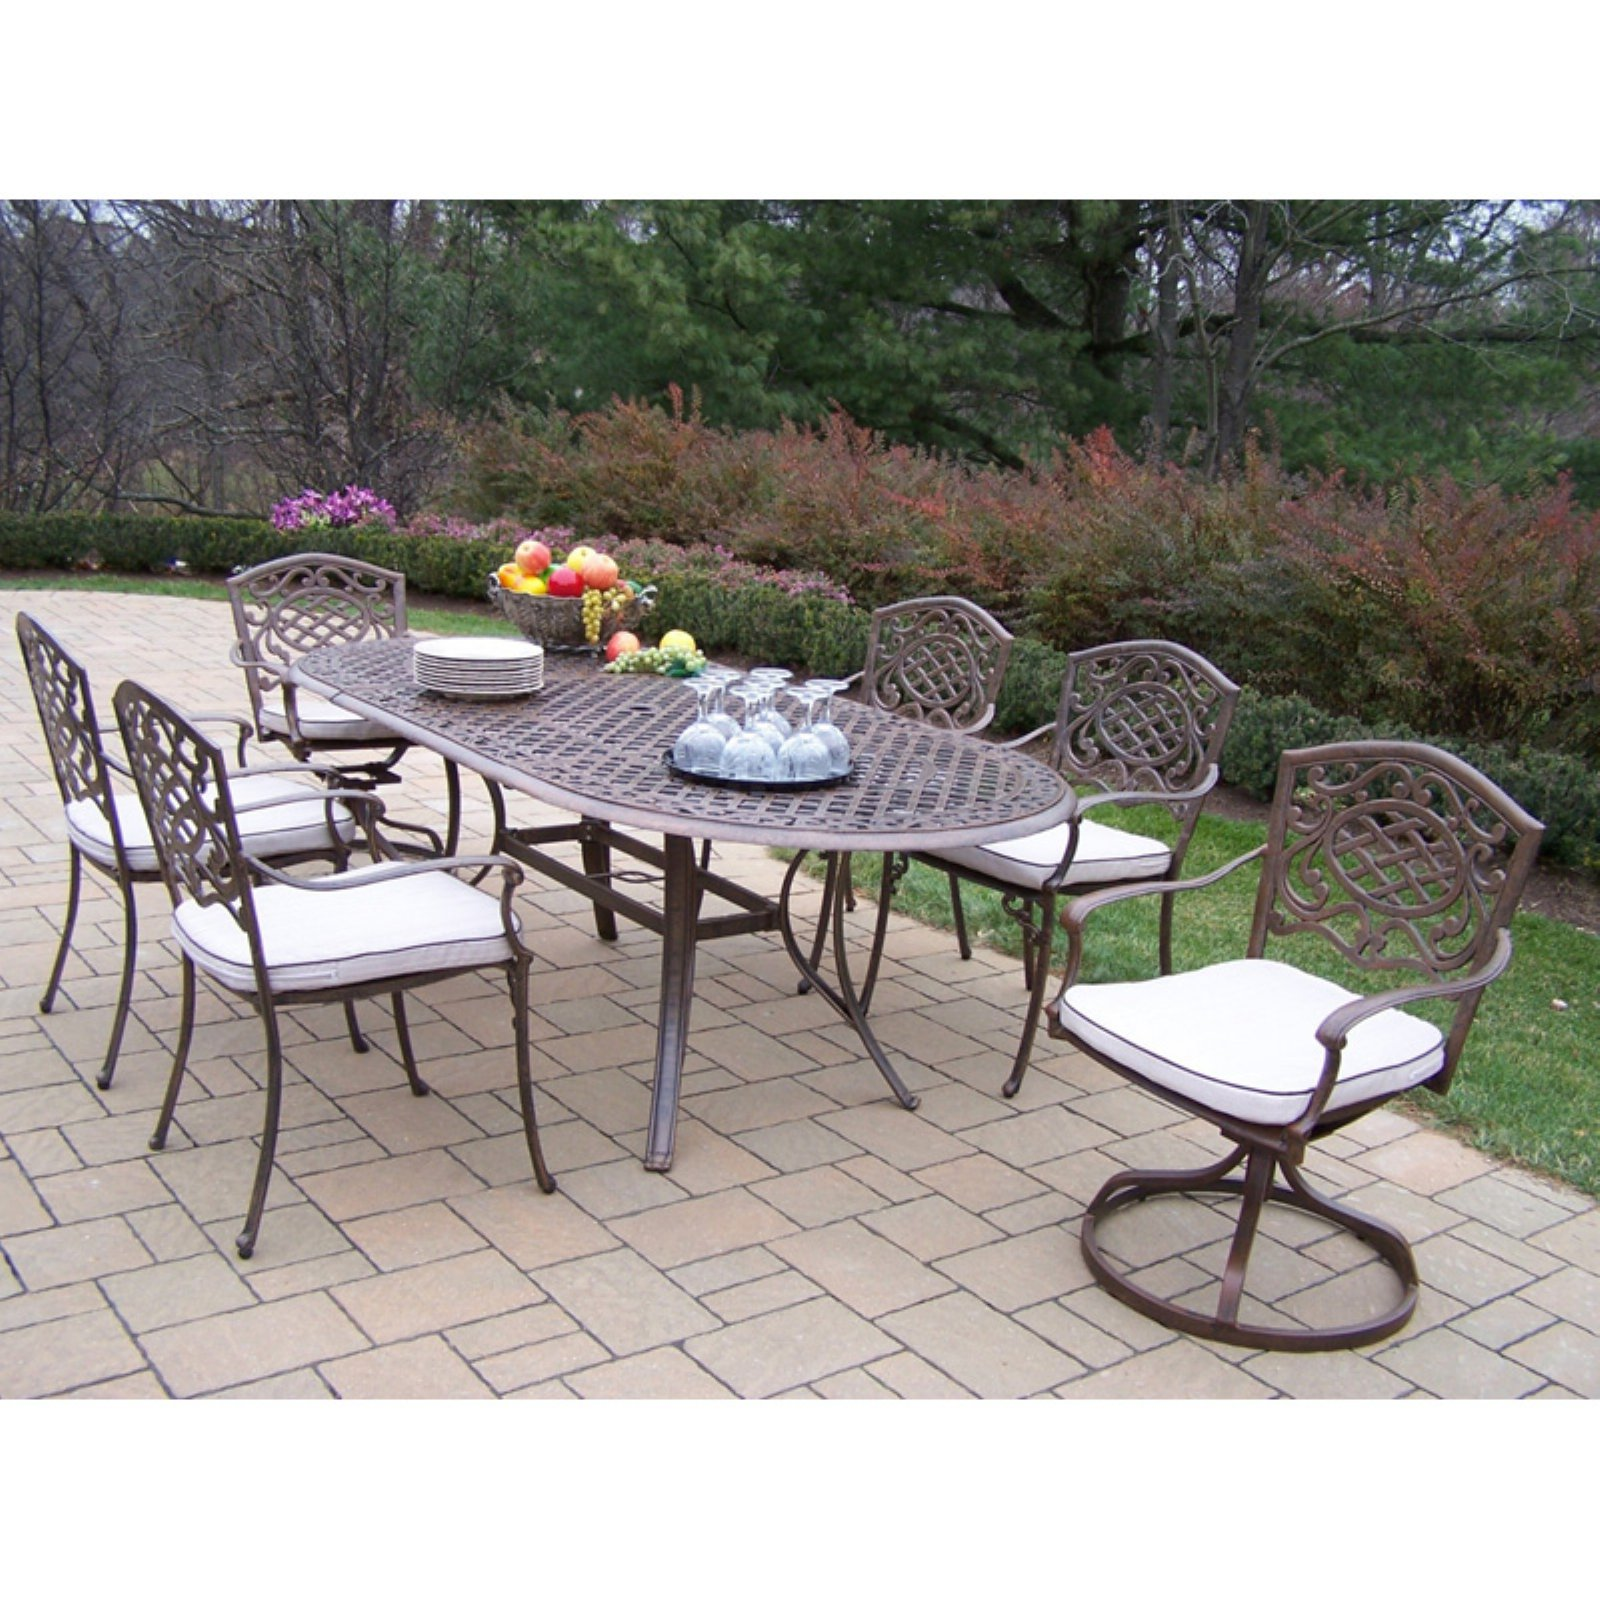 Oakland Living Mississippi Cast Aluminum 82 x 42 in. Oval Patio Dining Room Set with Swivel Chairs Seats 6 by Oakland Living Corp